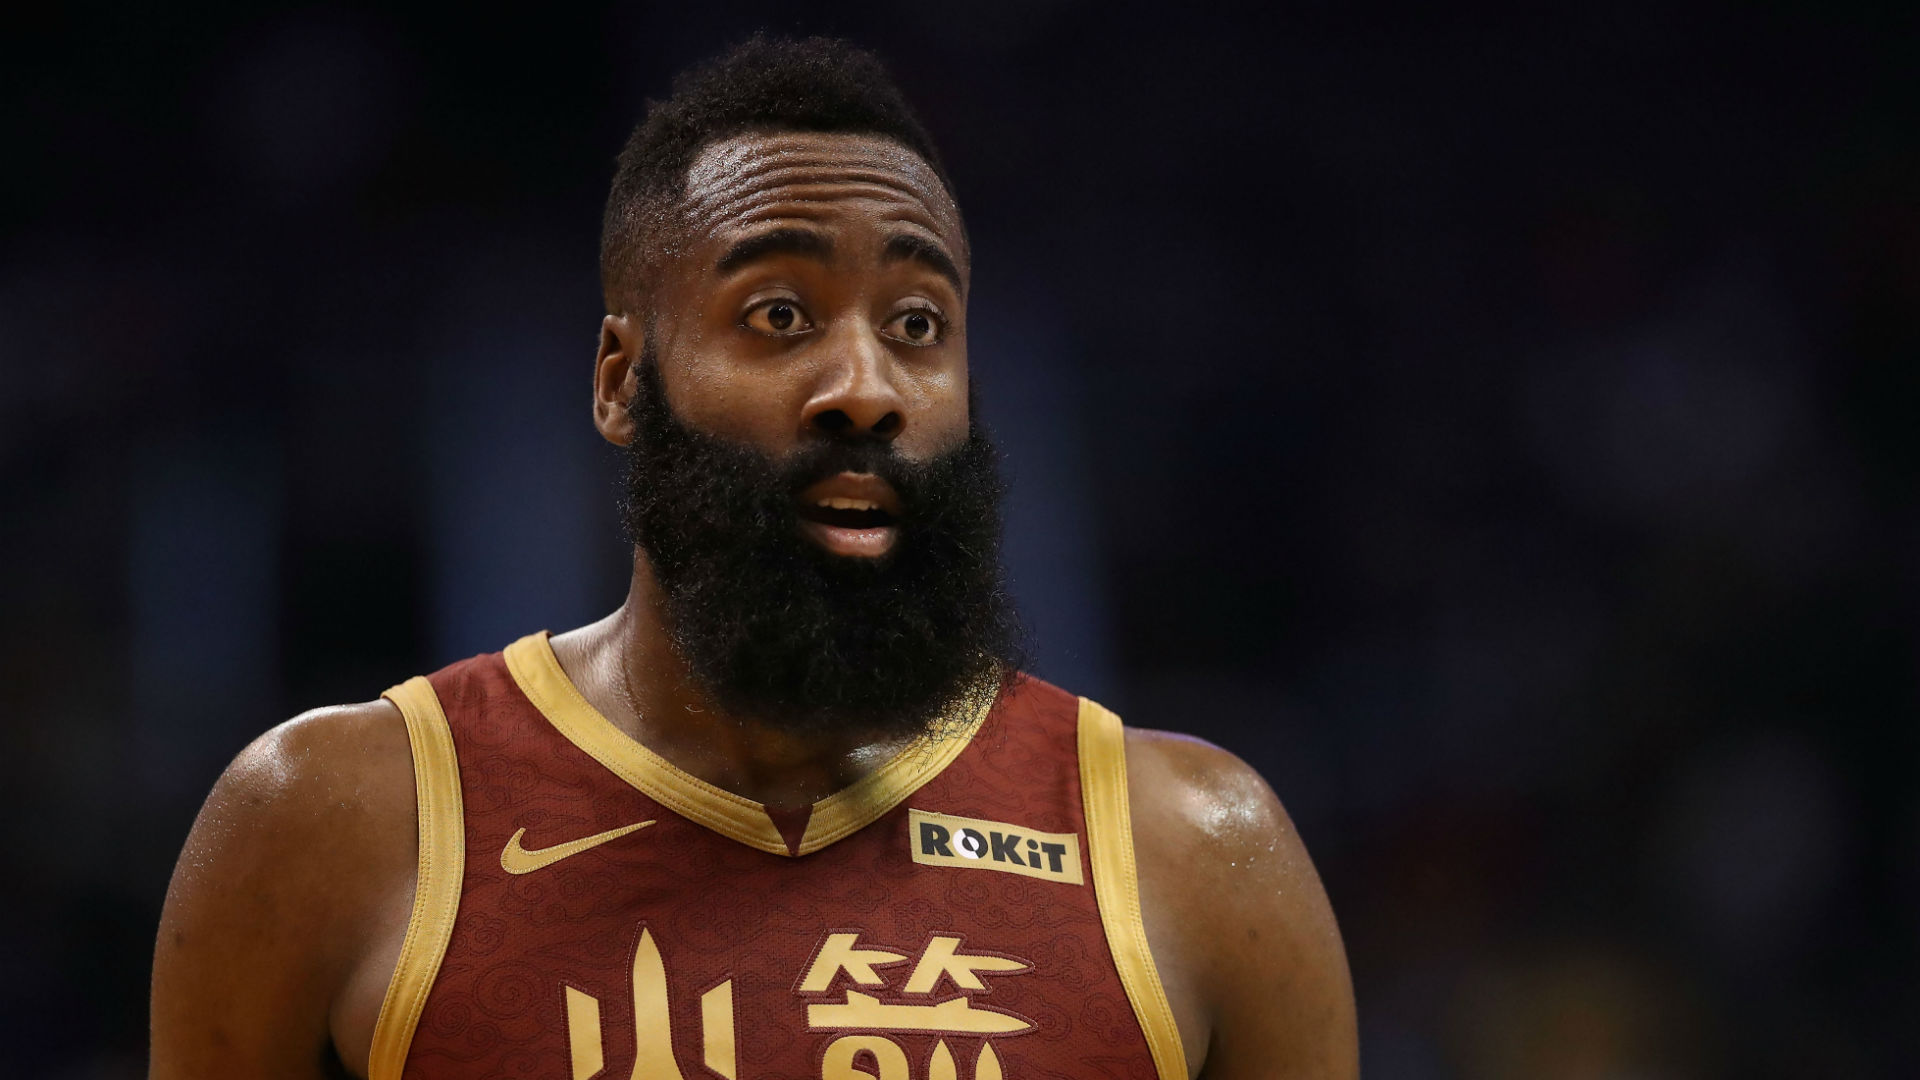 James Harden injury update: Rockets star questionable (cervical strain) vs. Timberwolves